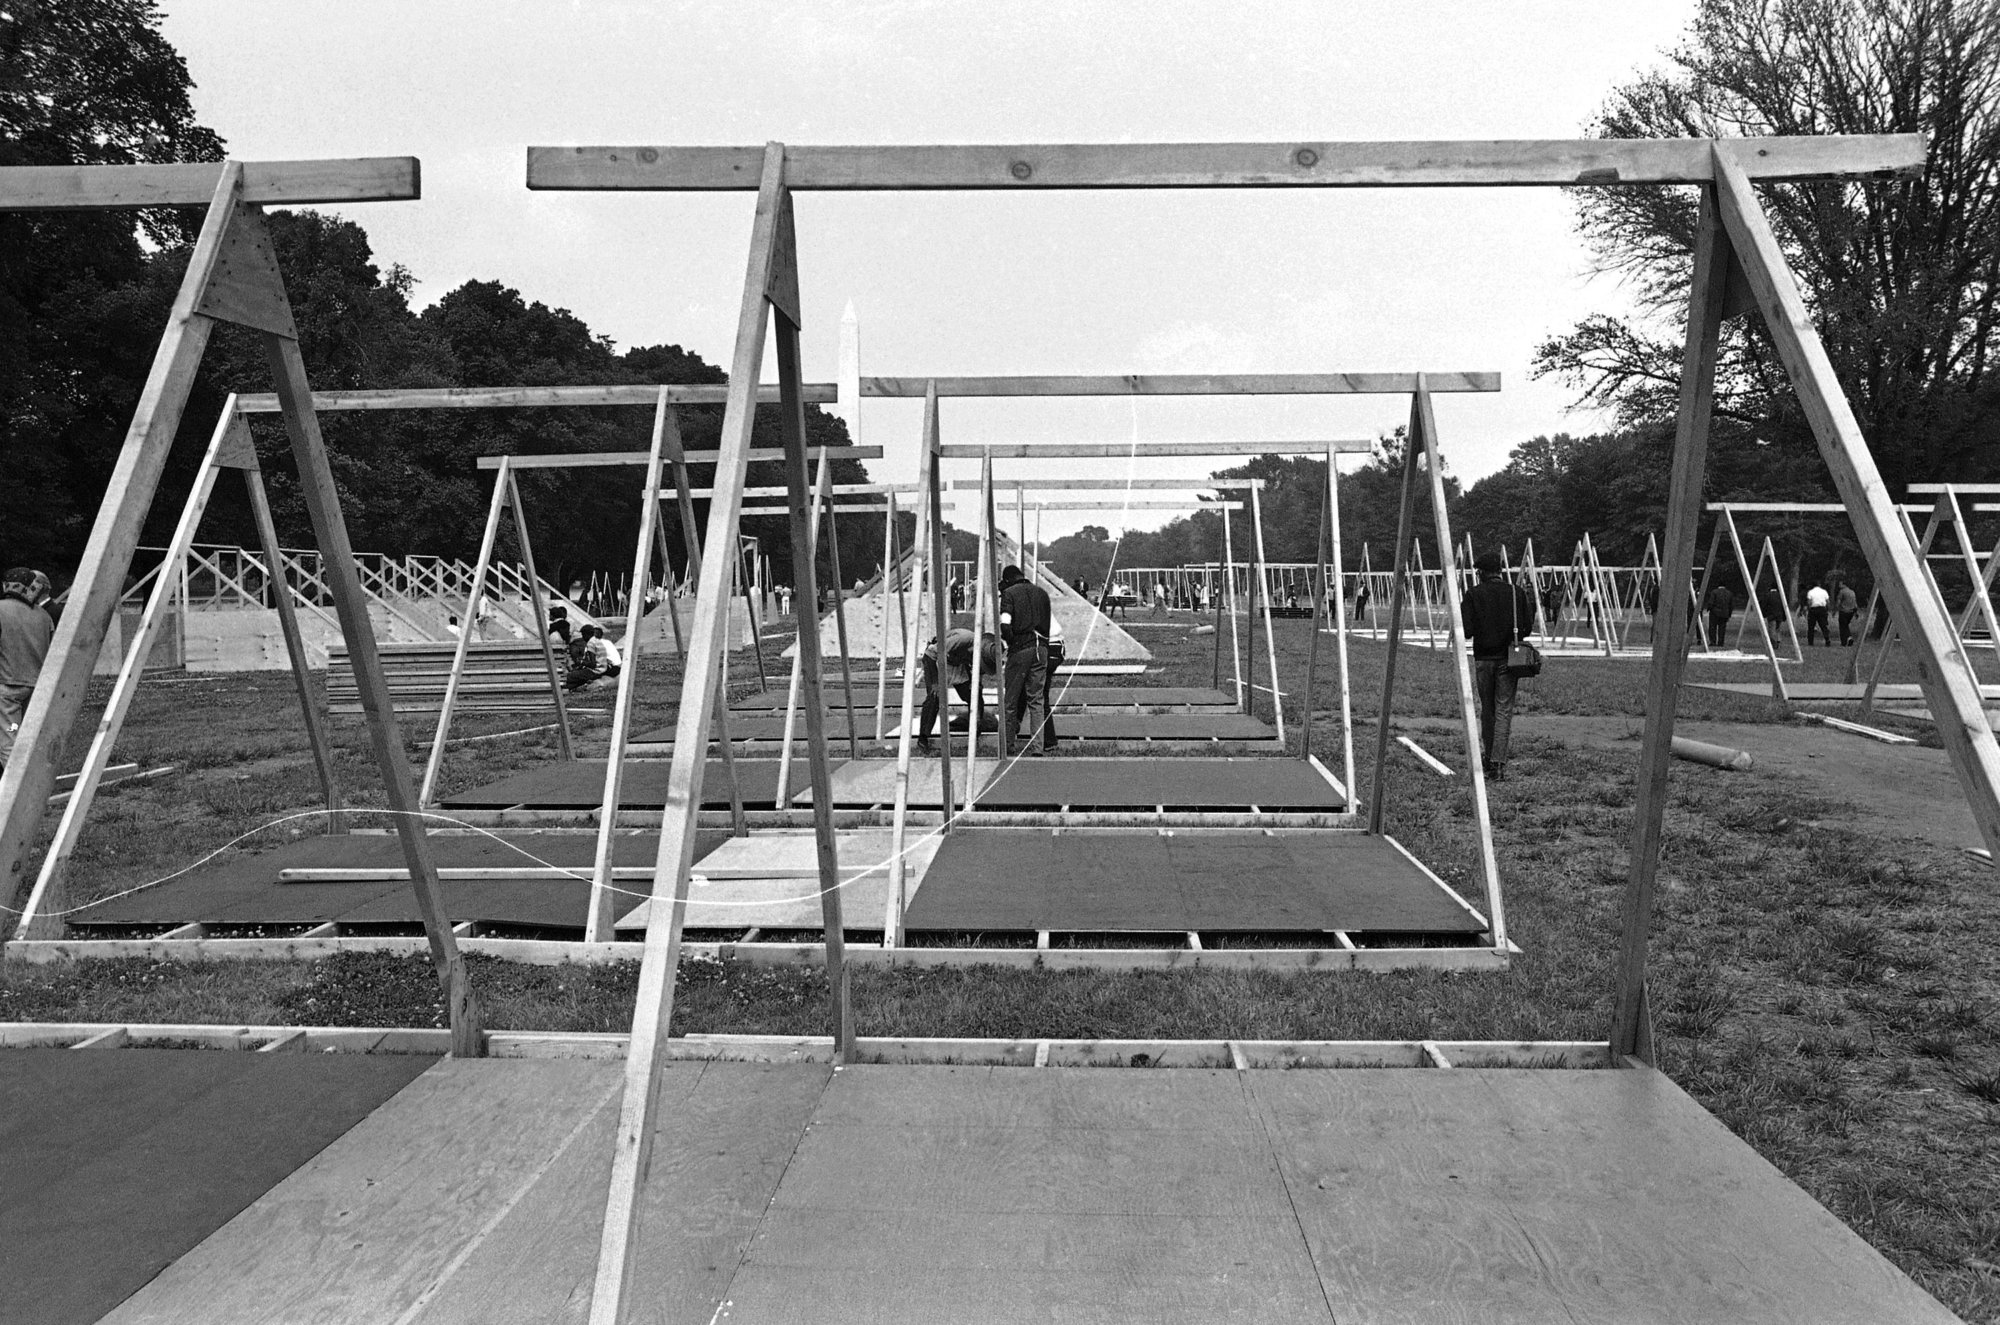 Workmen set up flooring and A-frames for the wooden camp near Lincoln Memorial to house the Poor People's Campaign demonstrators in Washington, May 13, 1968. A federal permit allows the demonstrators to occupy the 15-acre area until on June 16 and limits occupants to 3,000. (AP Photo/Bob Schutz)